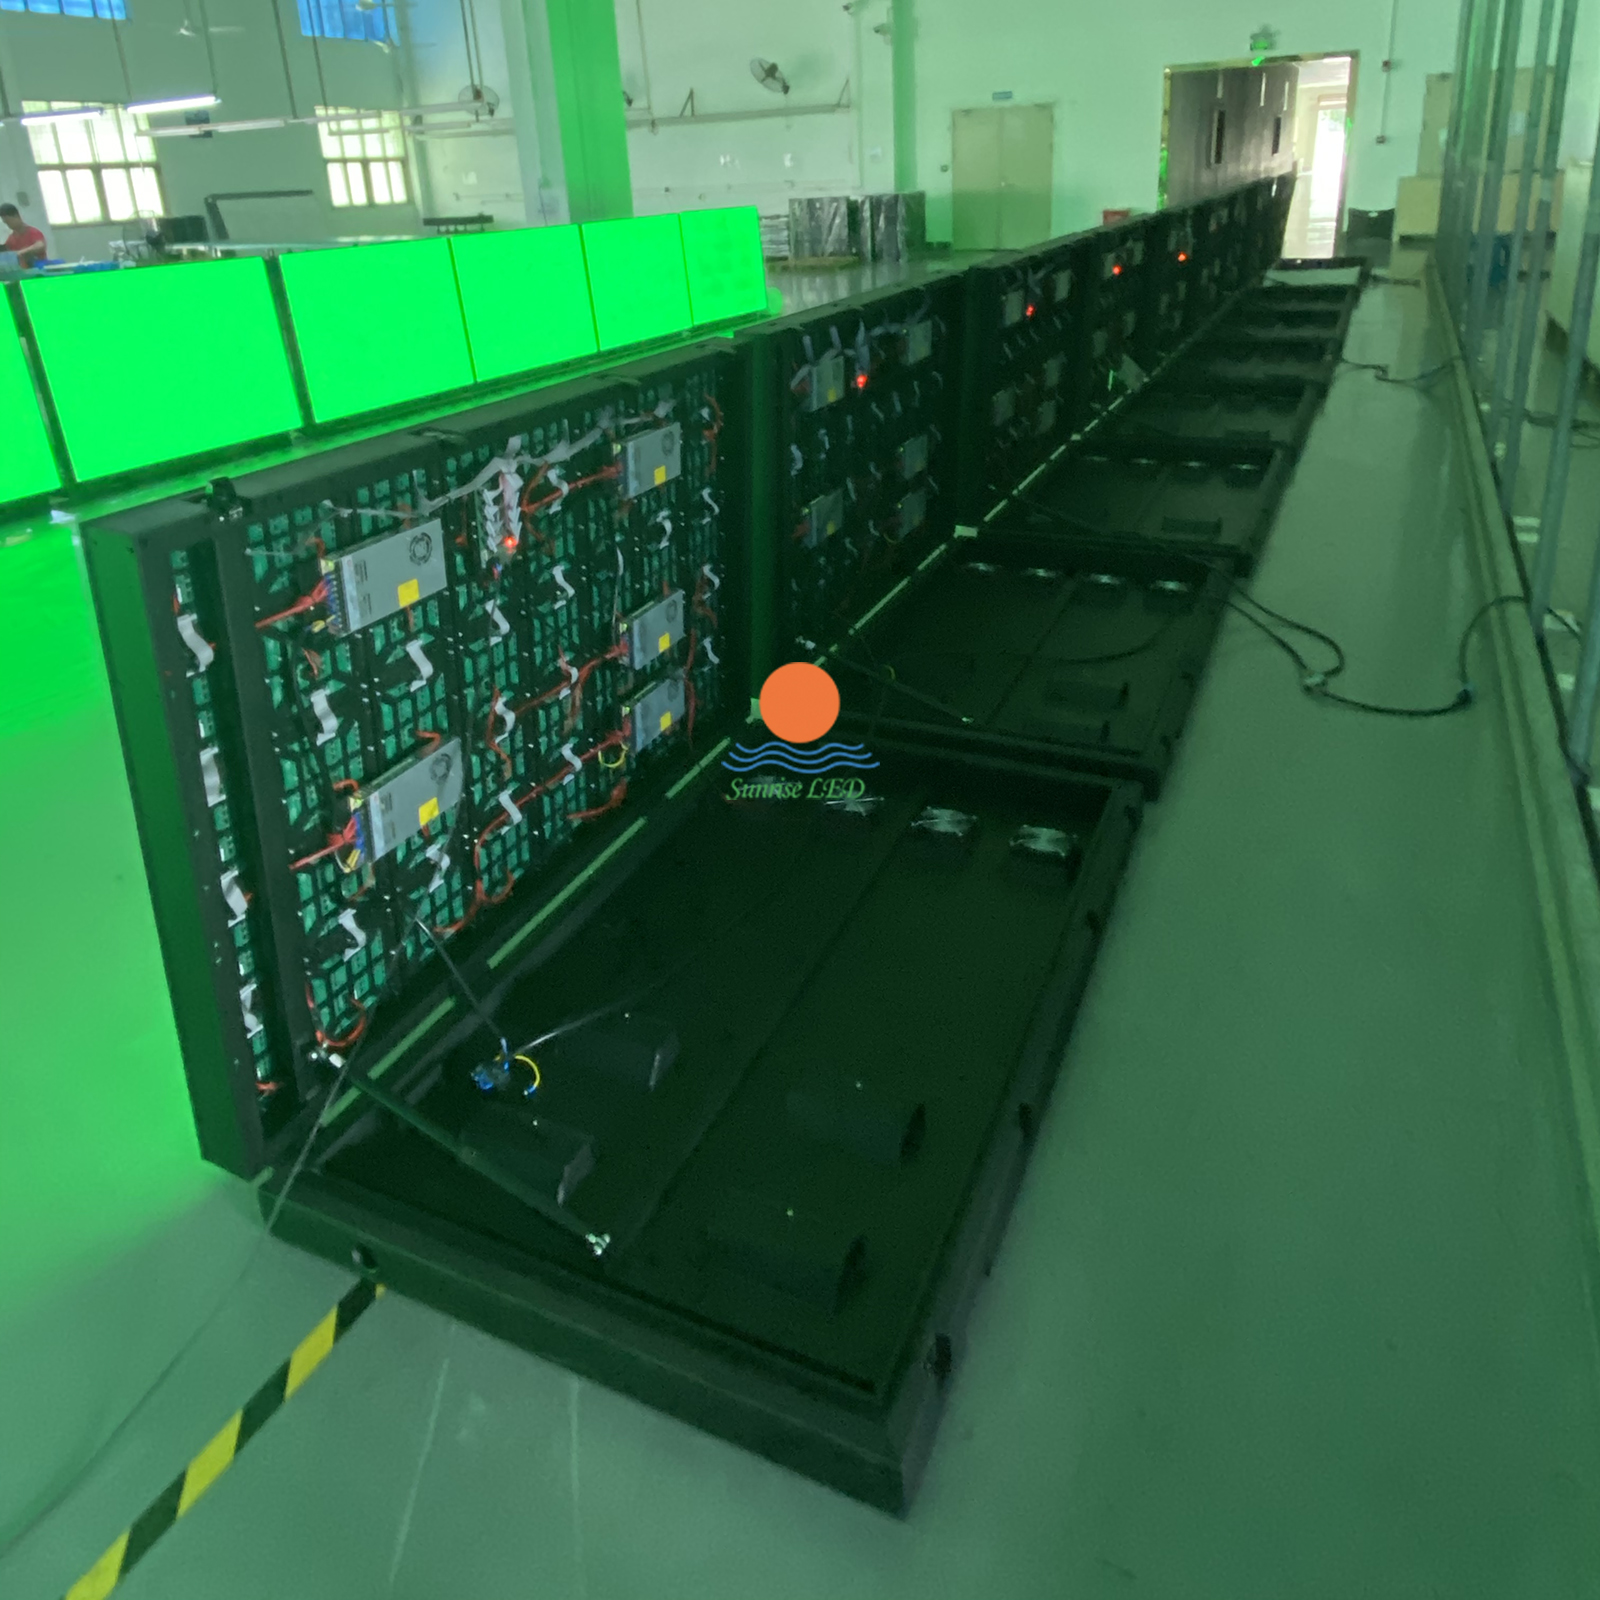 How to protect outdoor LED display?